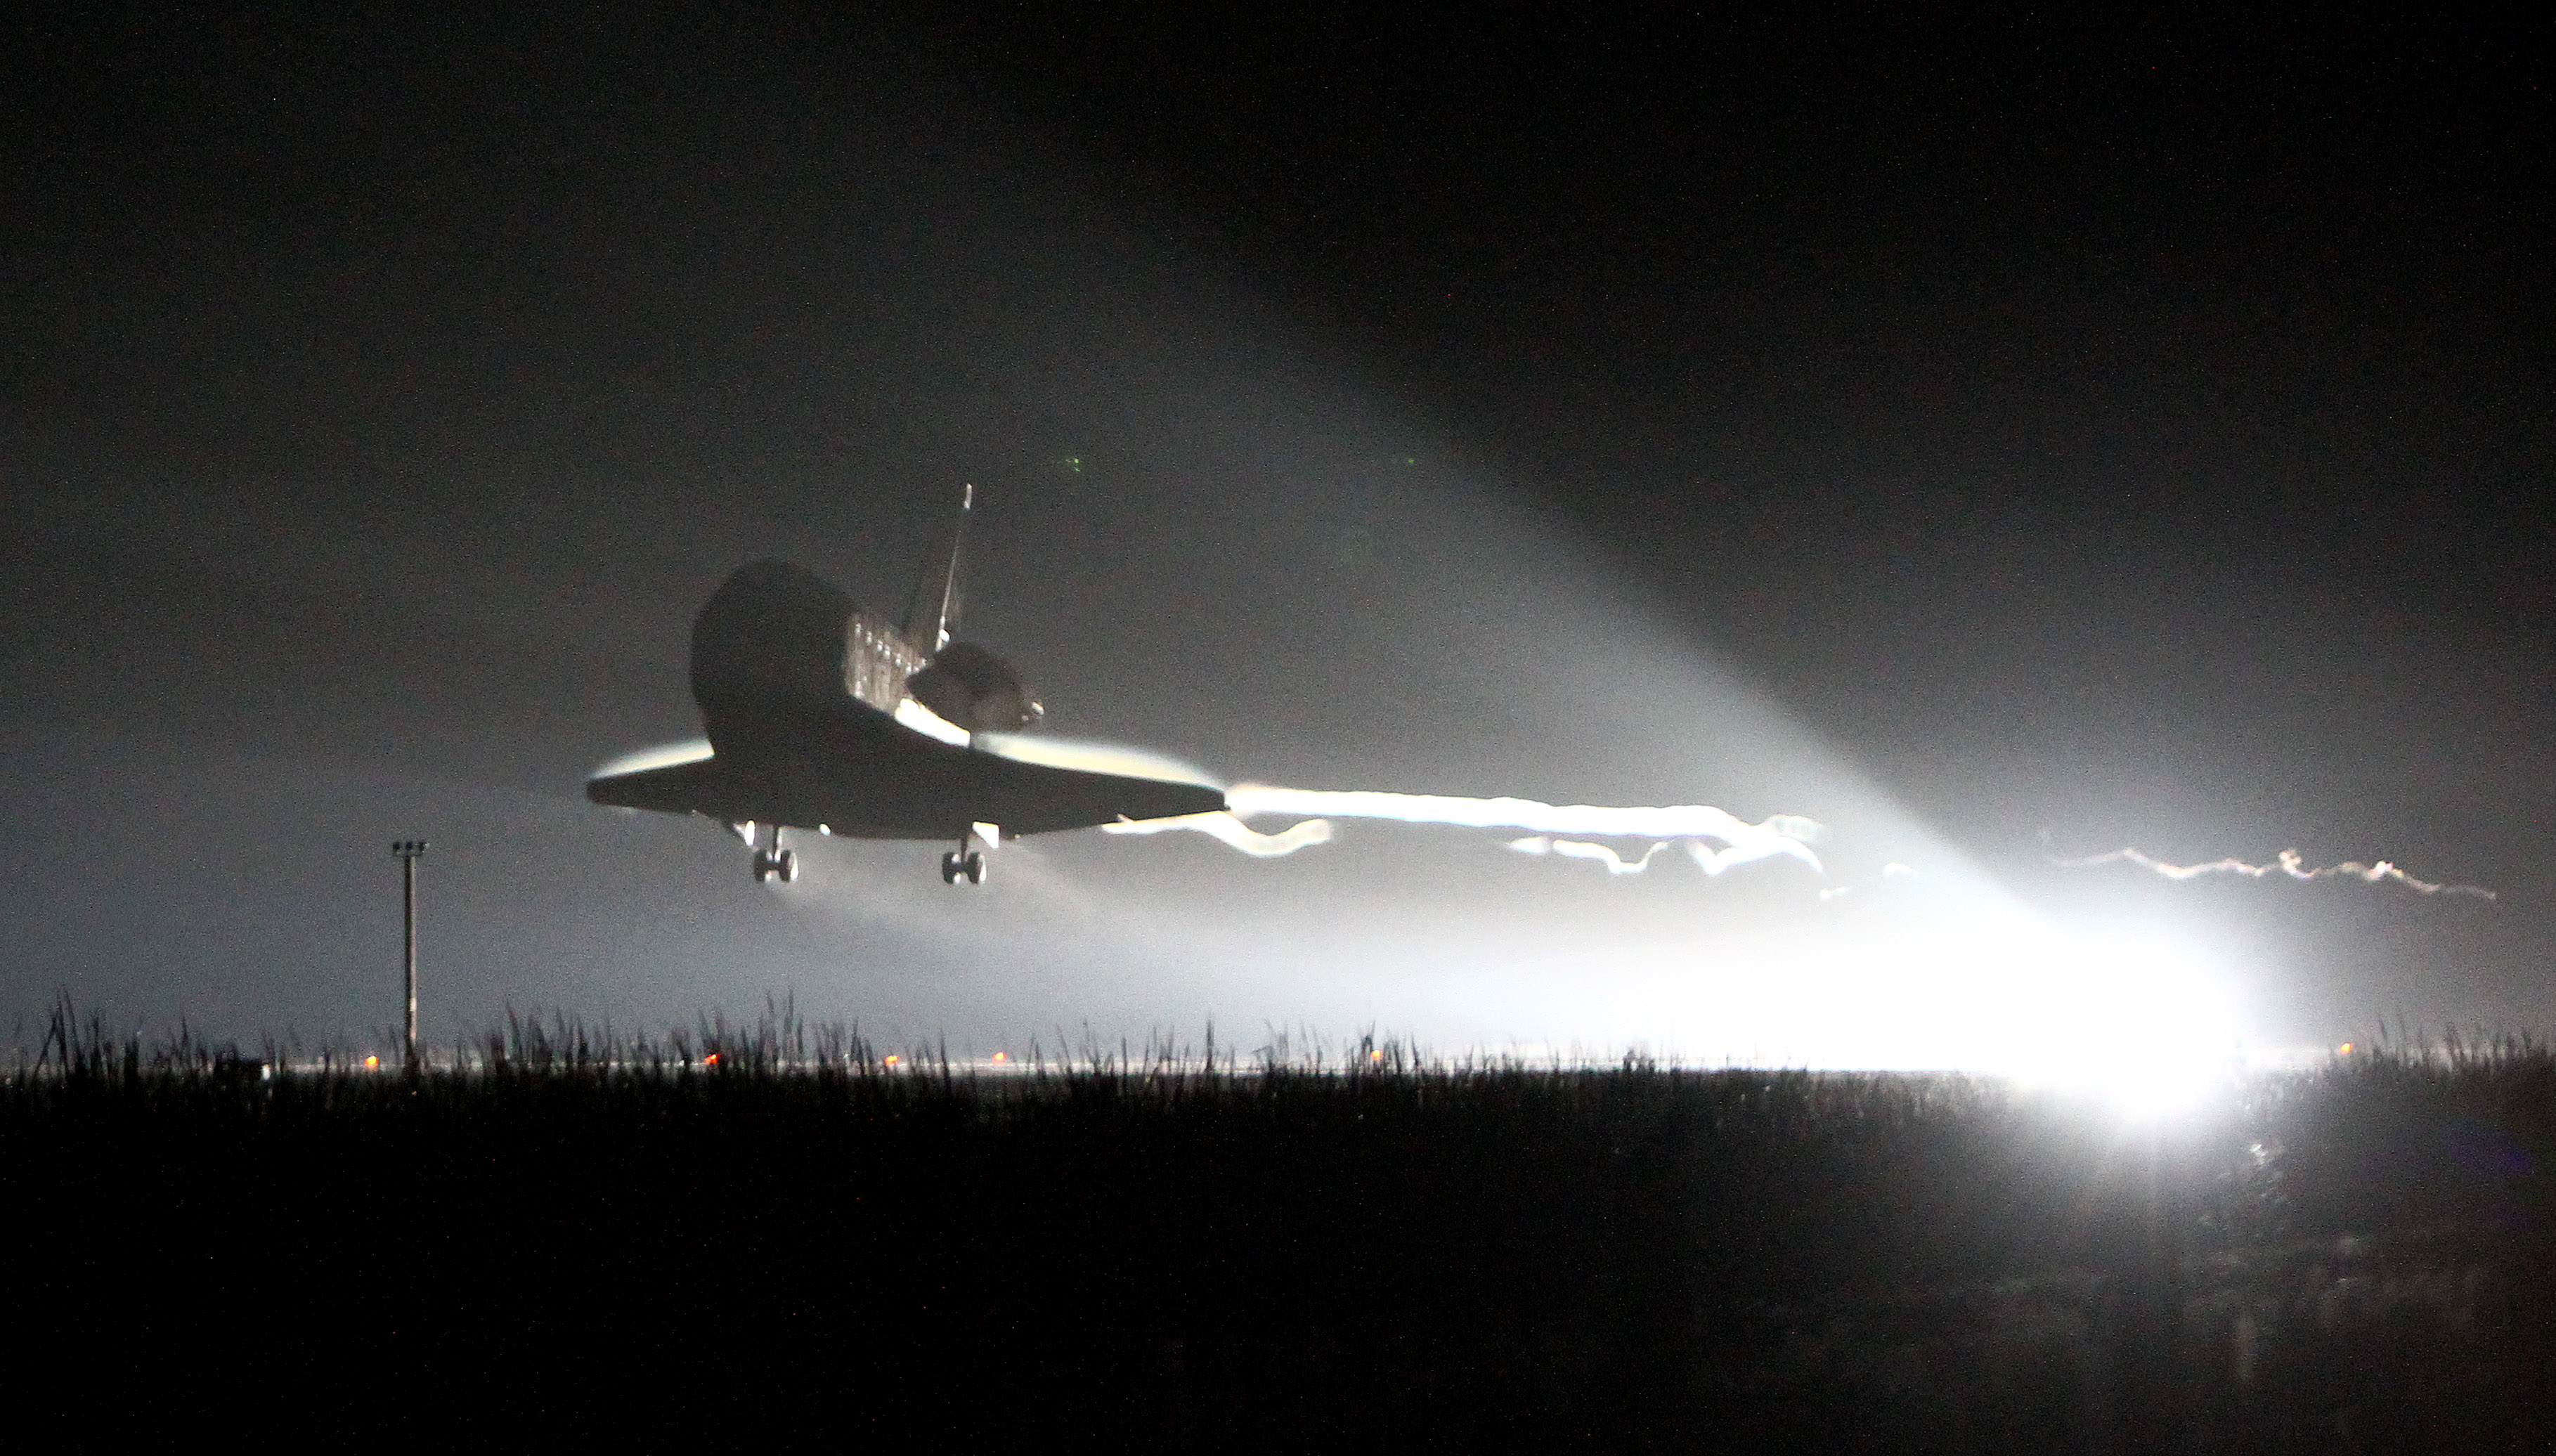 The space shuttle Endeavour prepares to land after completing her final flight at the Kennedy Space Center in Cape Canaveral, Fla., Wednesday, June 1, 2011. Endeavour , and her crew of six astronauts, wrapped up a 16 day mission to the international space station.